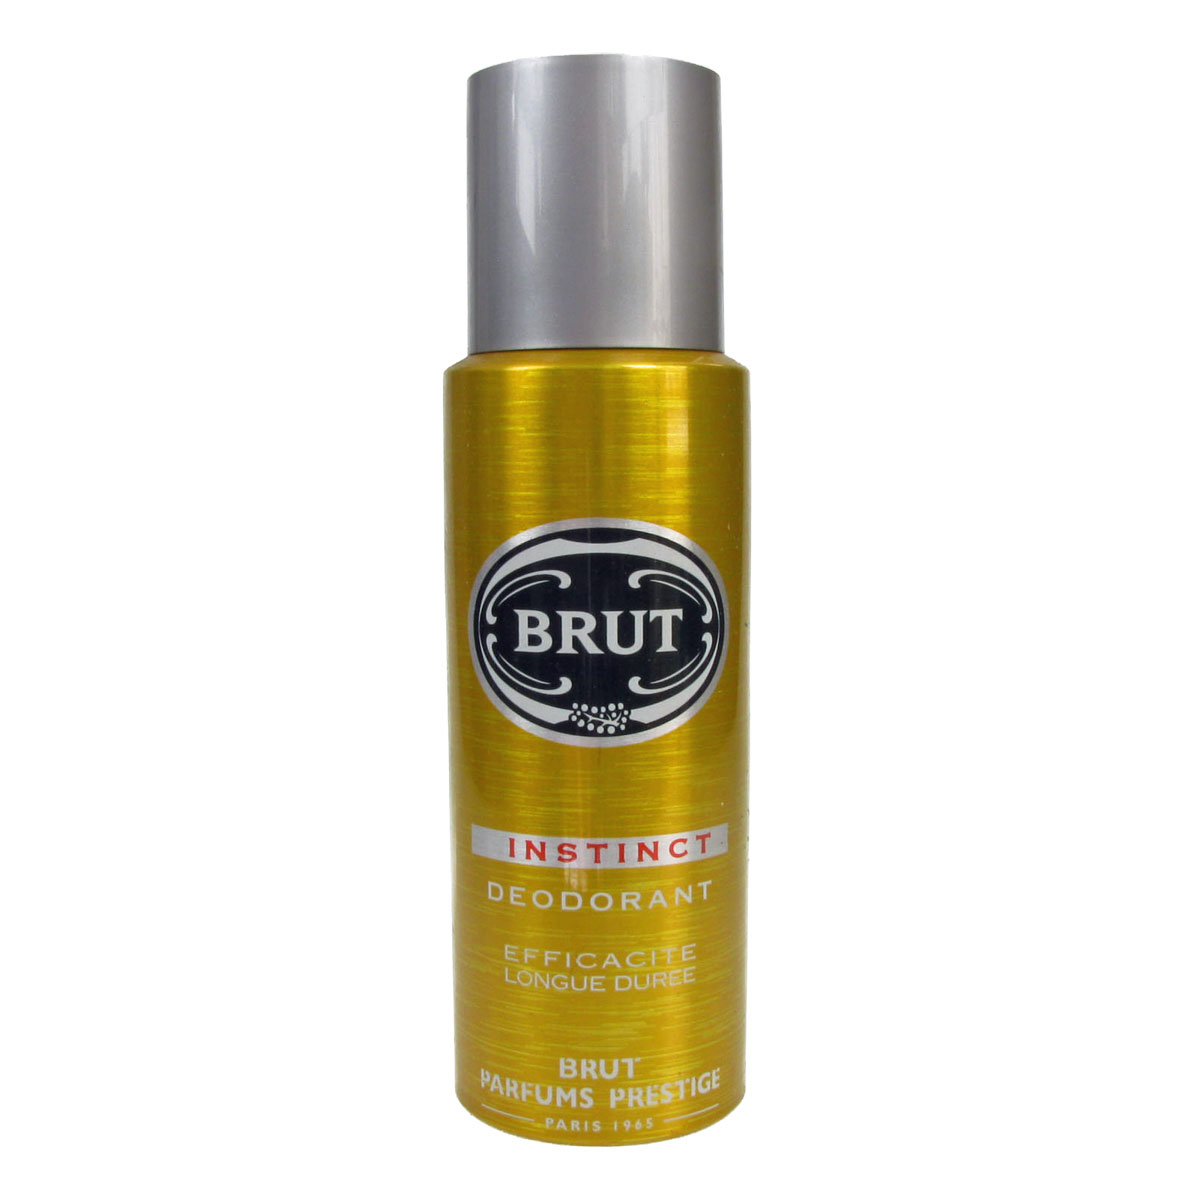 BRUT Deodorant Body Spray Instinct 200ml Free UK P&P Enlarged Preview